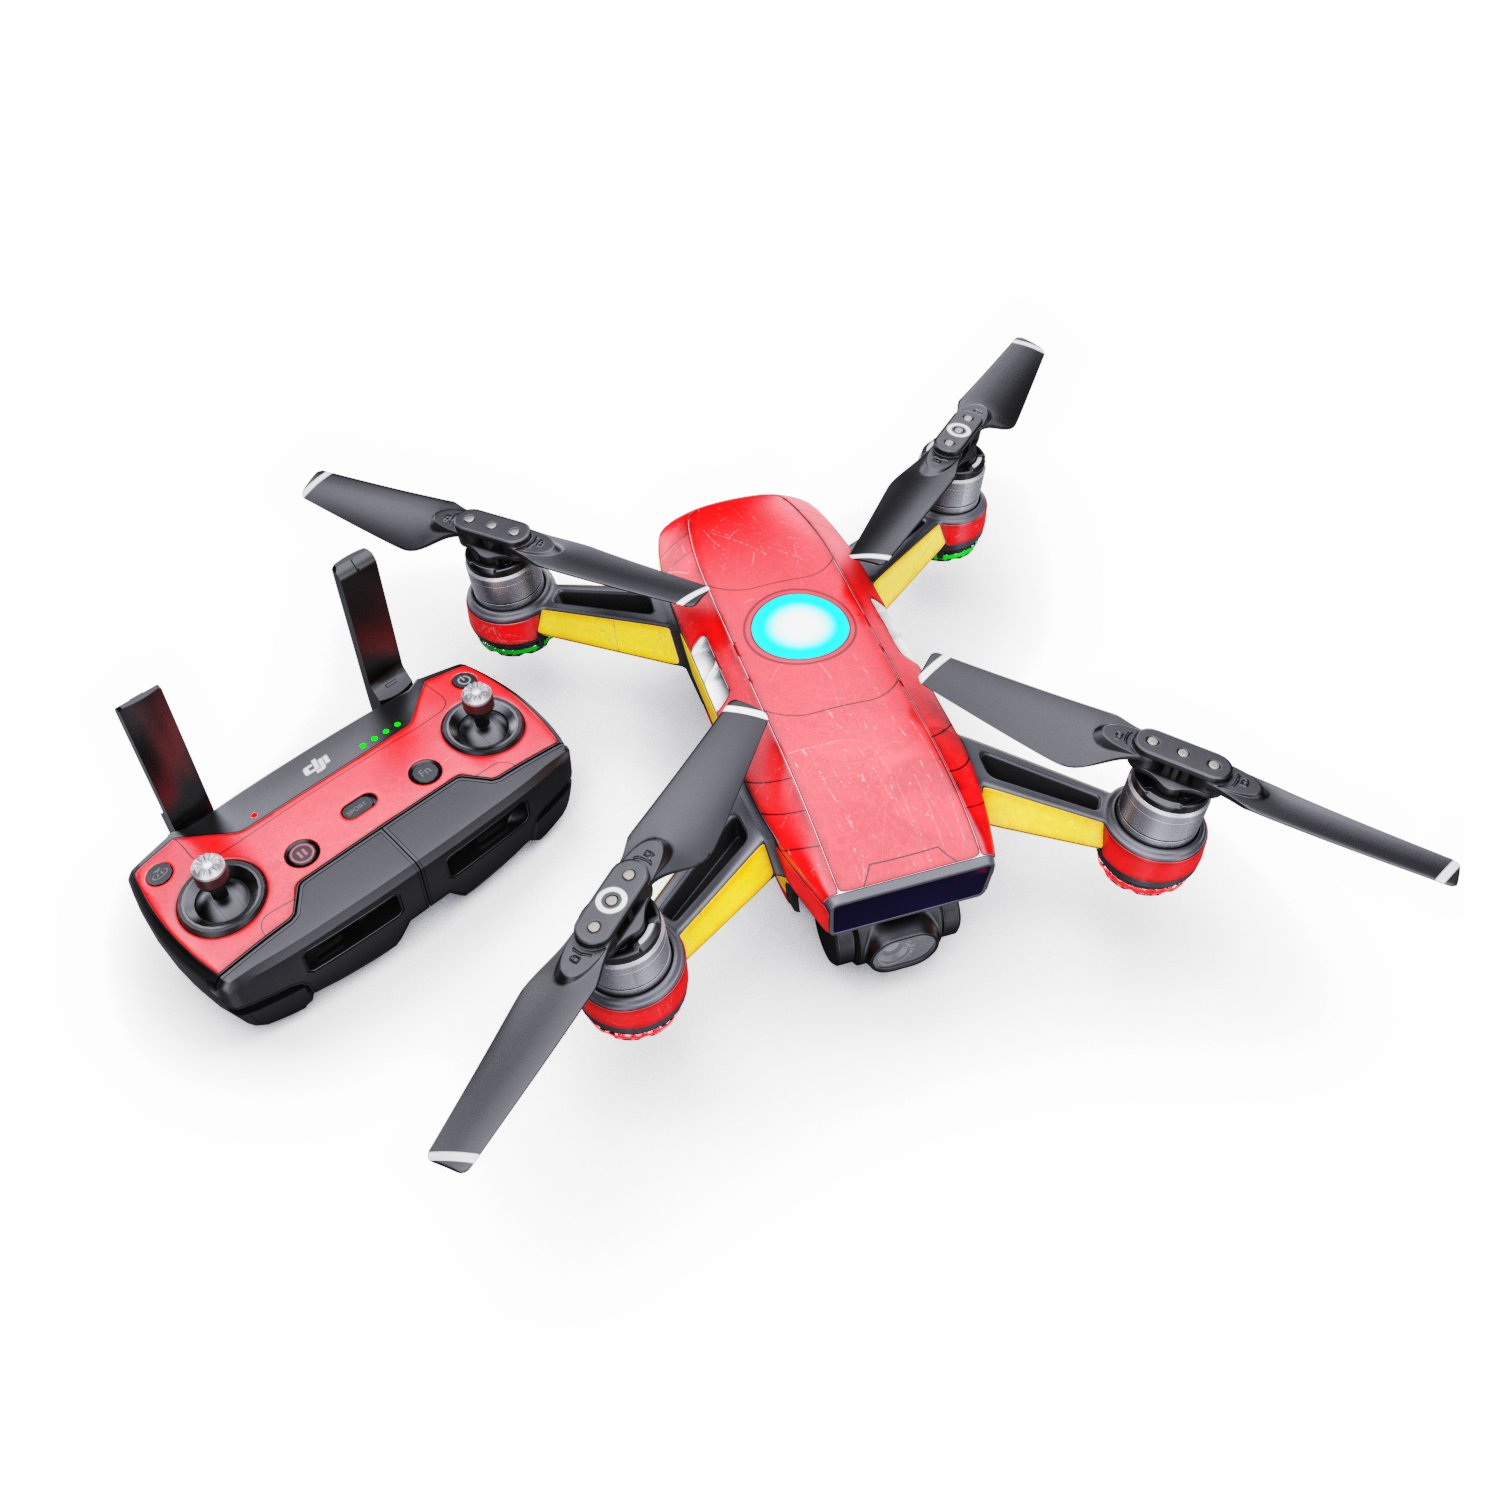 Mark XLIII Decal for Drone DJI Spark Kit - Includes Drone Skin, Controller Skin and 1 Battery Skin